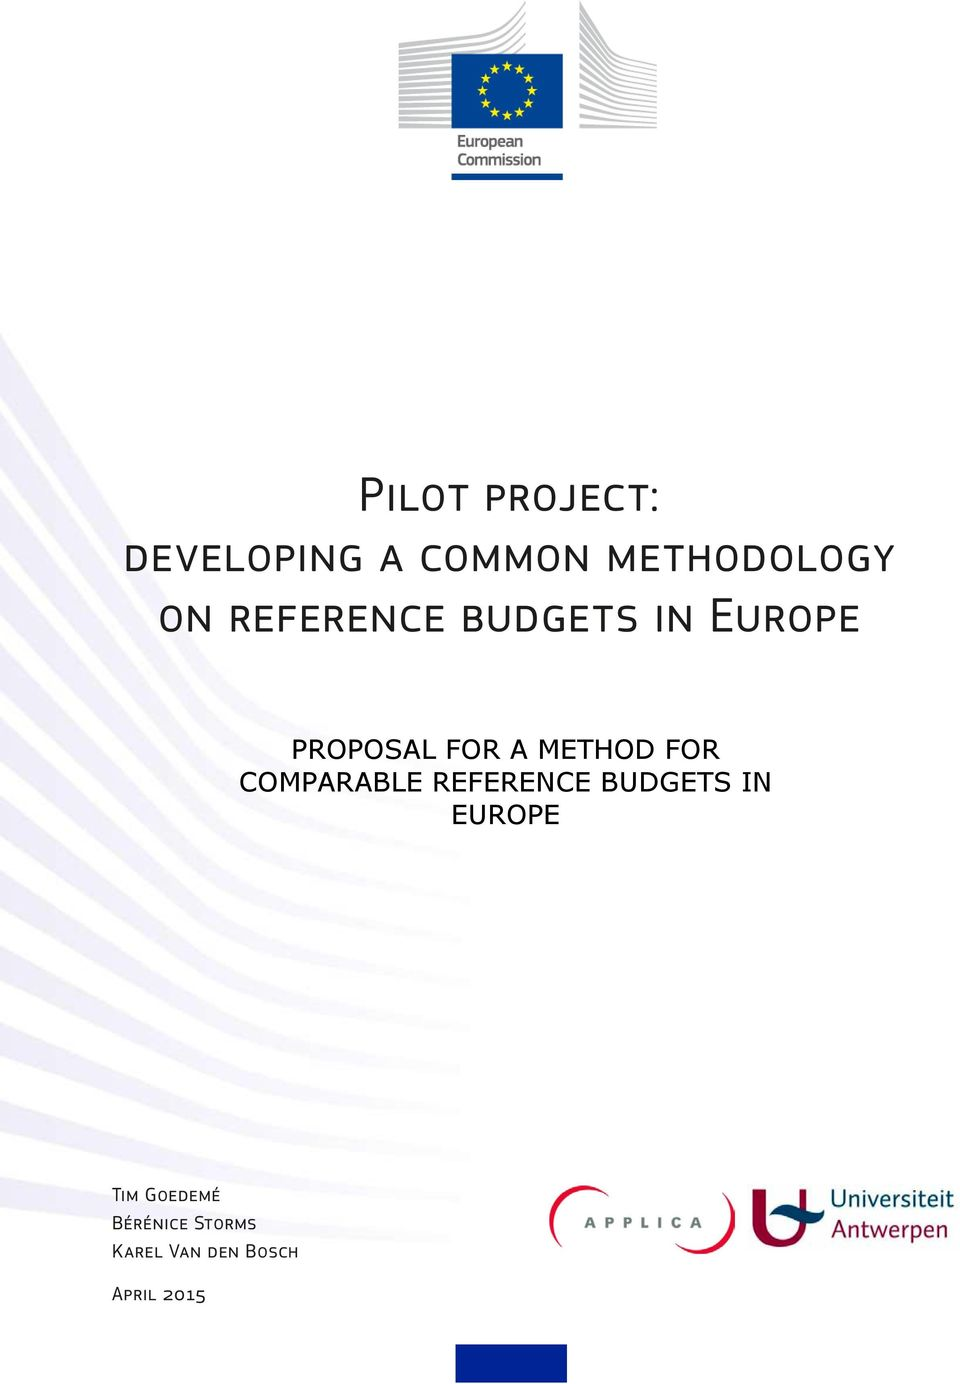 FOR COMPARABLE REFERENCE BUDGETS IN EUROPE Tim